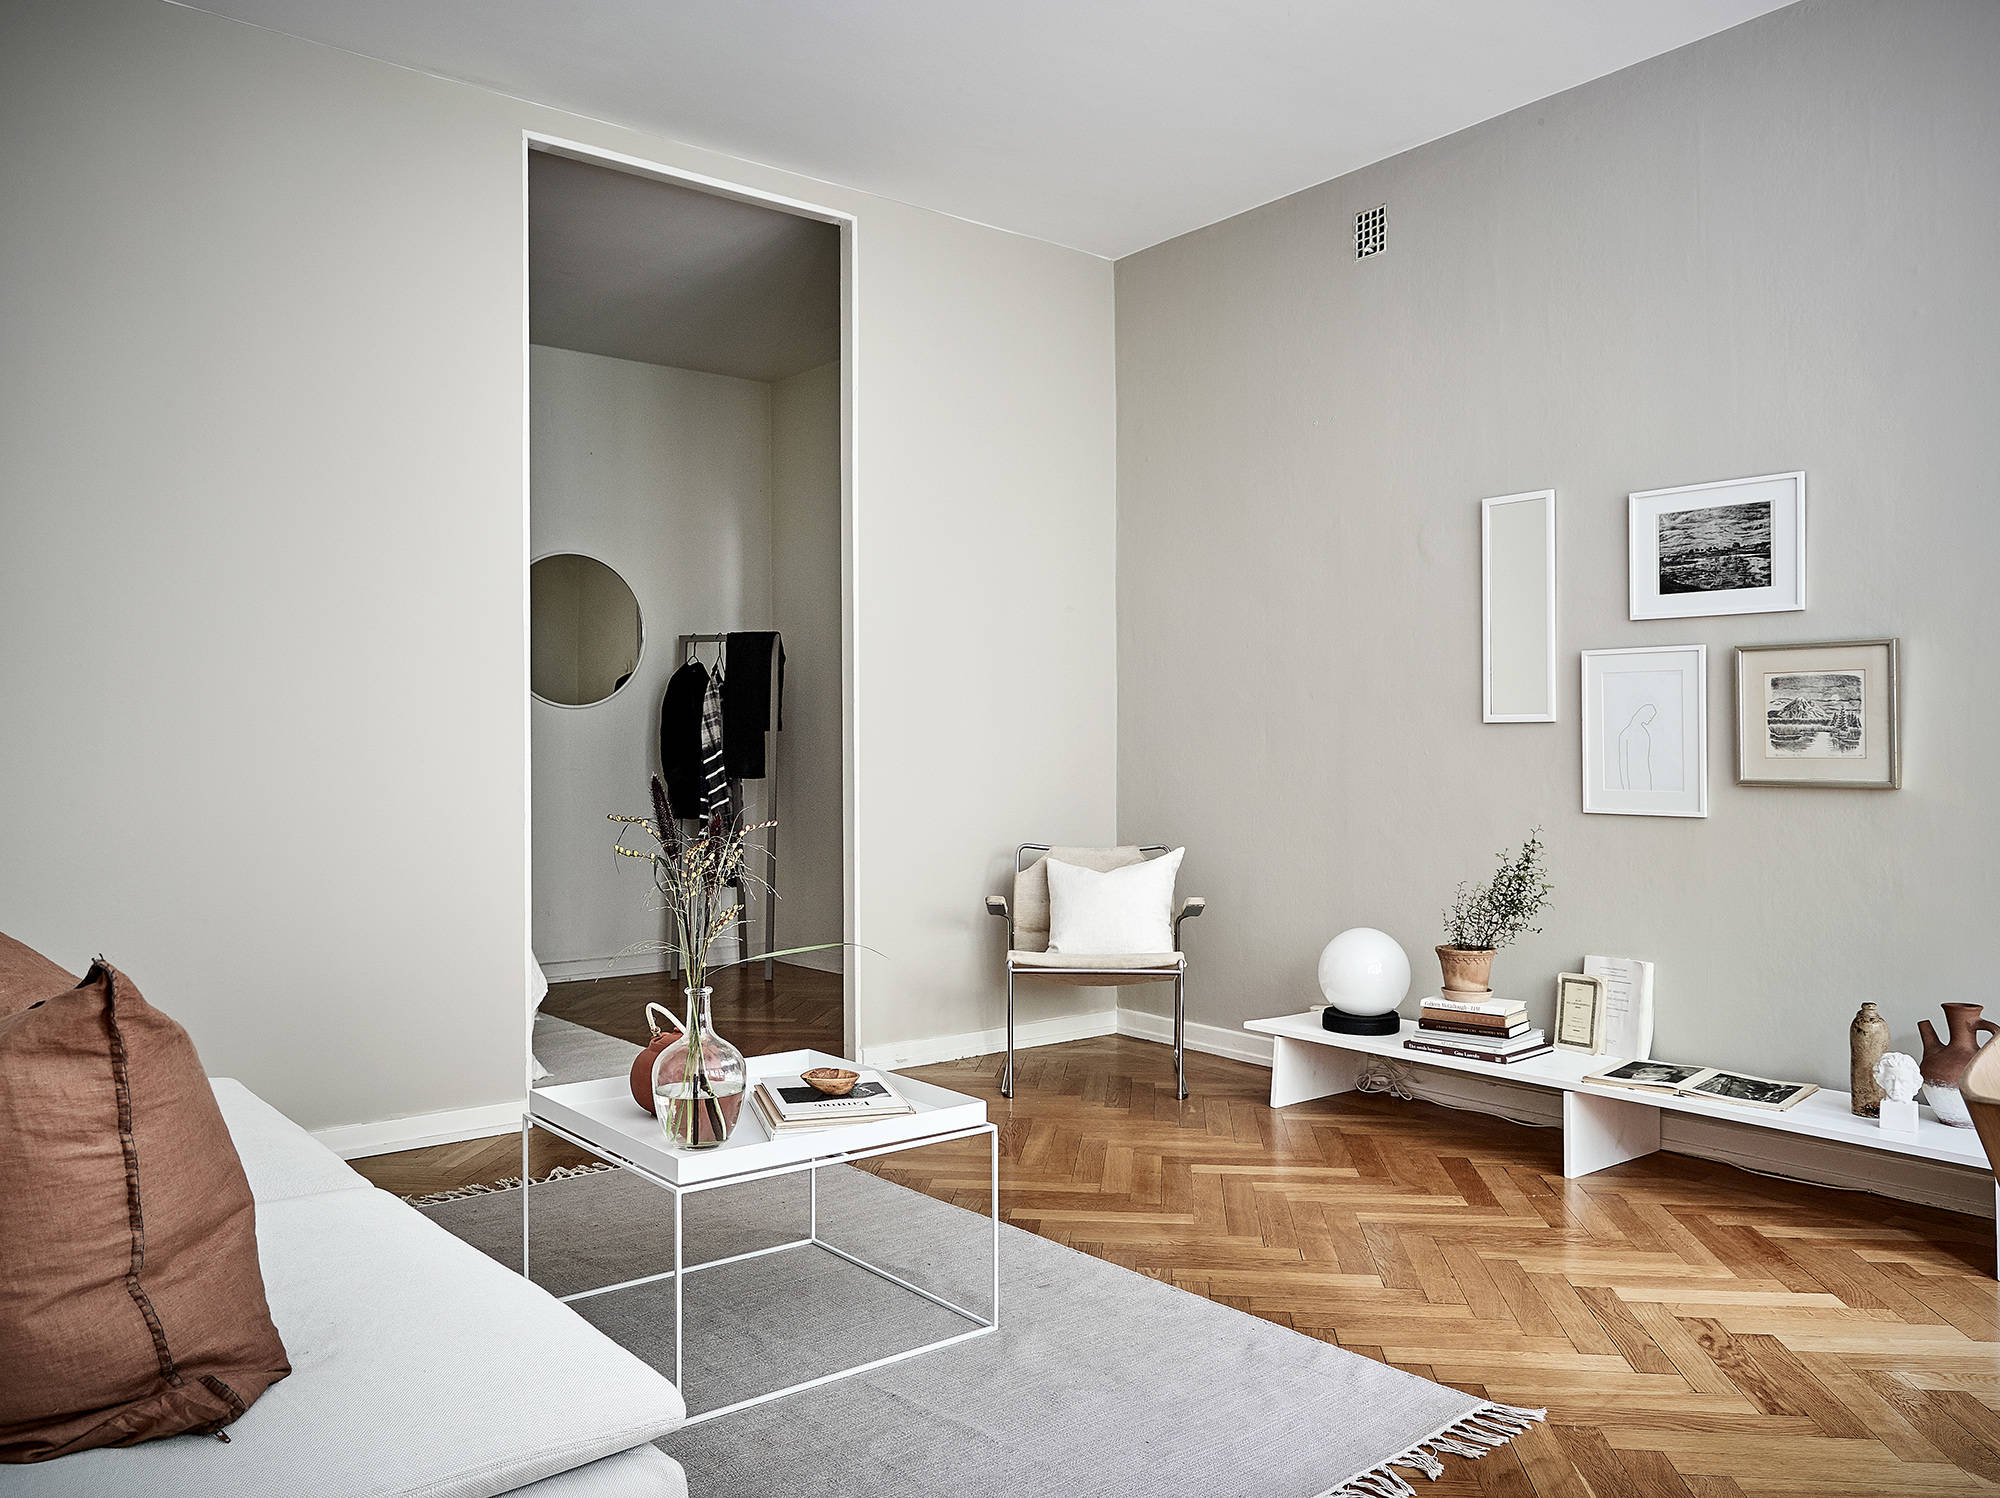 ... Minimal home with warm colors - via Coco Lapine Design blog ...